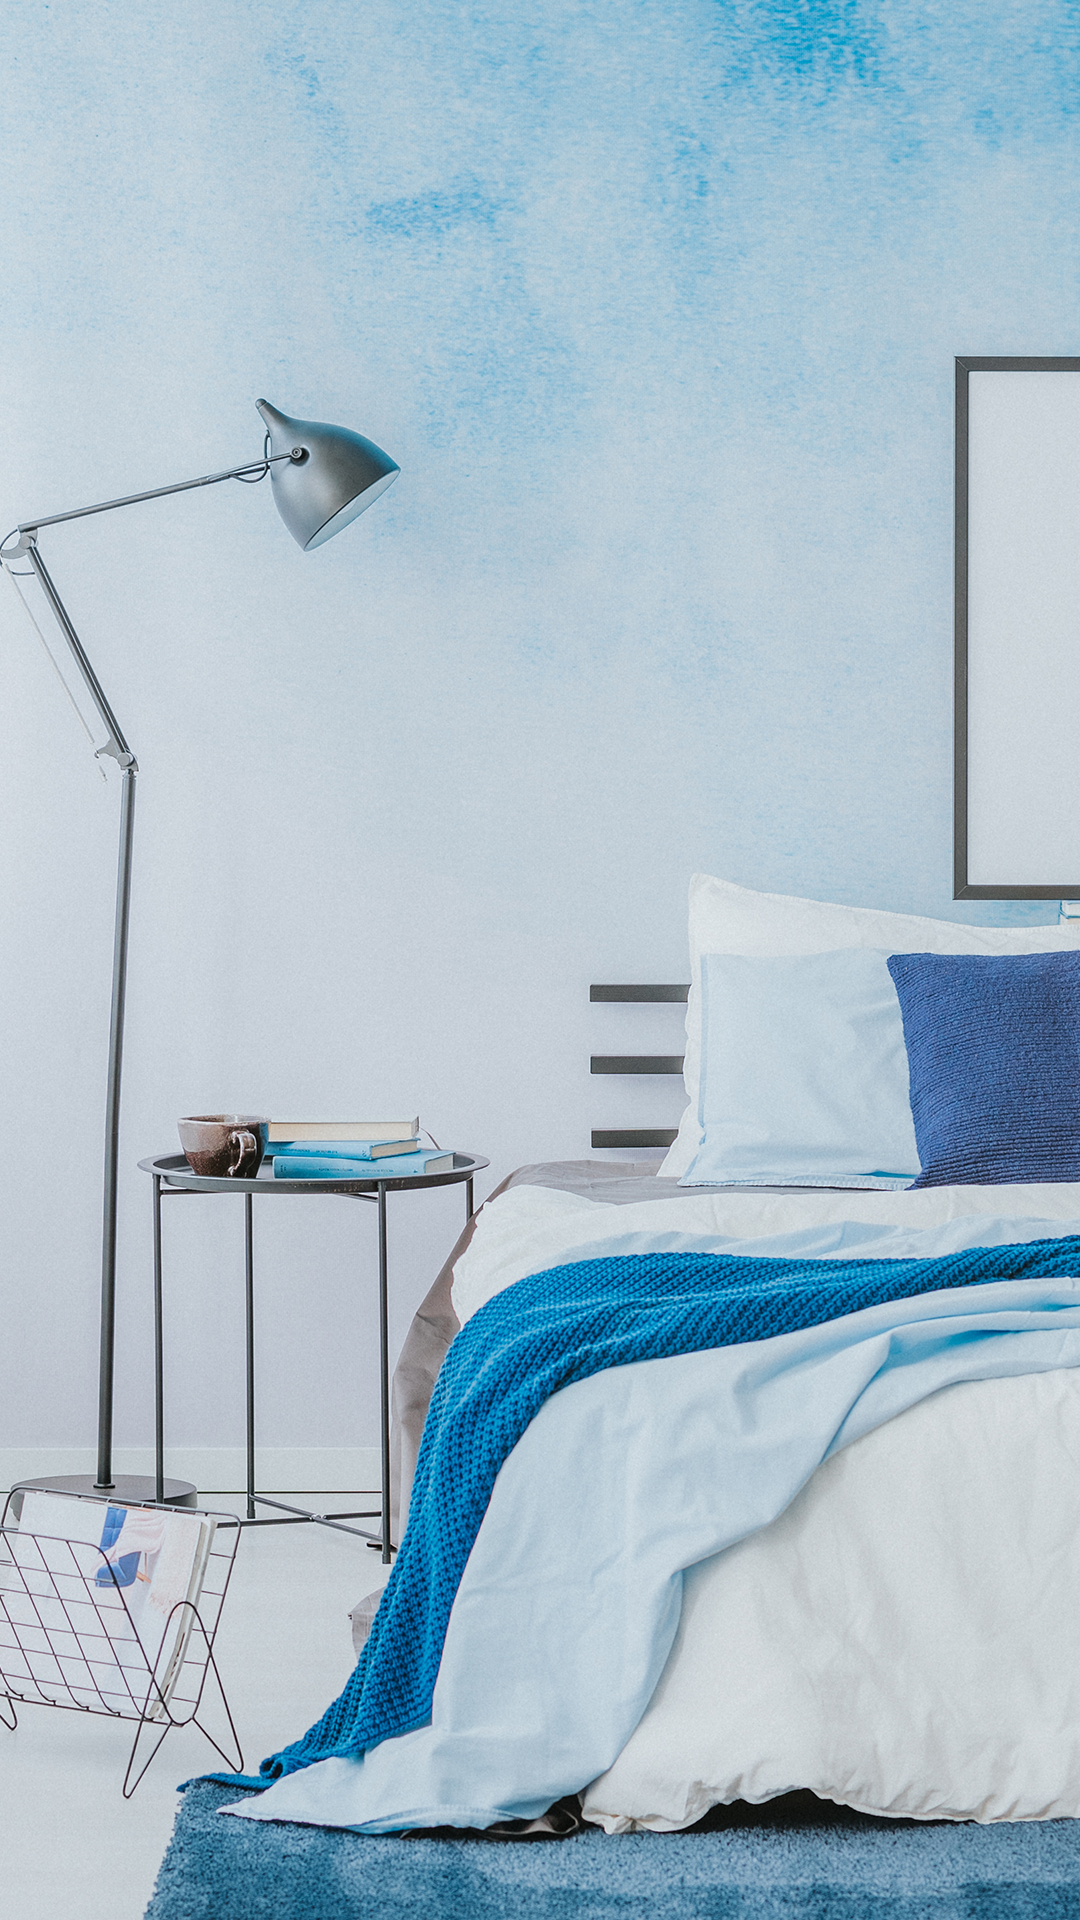 Adding A Splash Of Blue Makes The Room Look Welcoming Friendly And Inviting Homedecor Colo Simple Bedroom Design Asian Paints Colour Shades Bedroom Colors